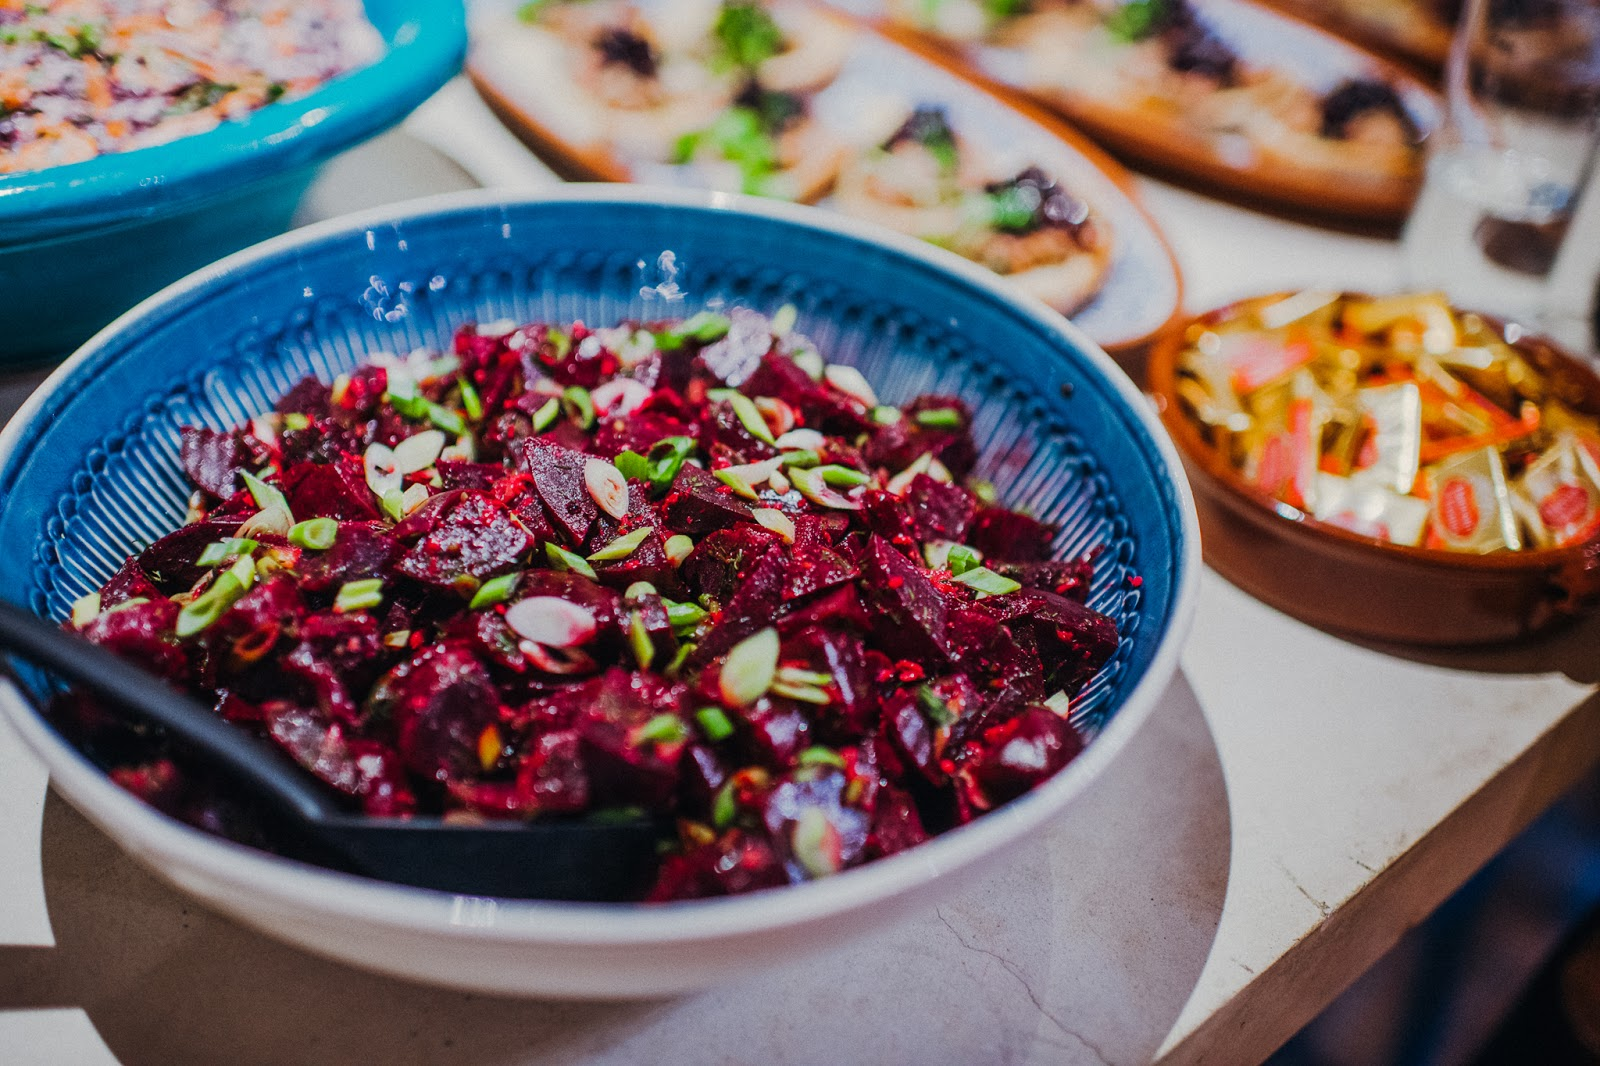 Beetroot salad in a blue bowl.